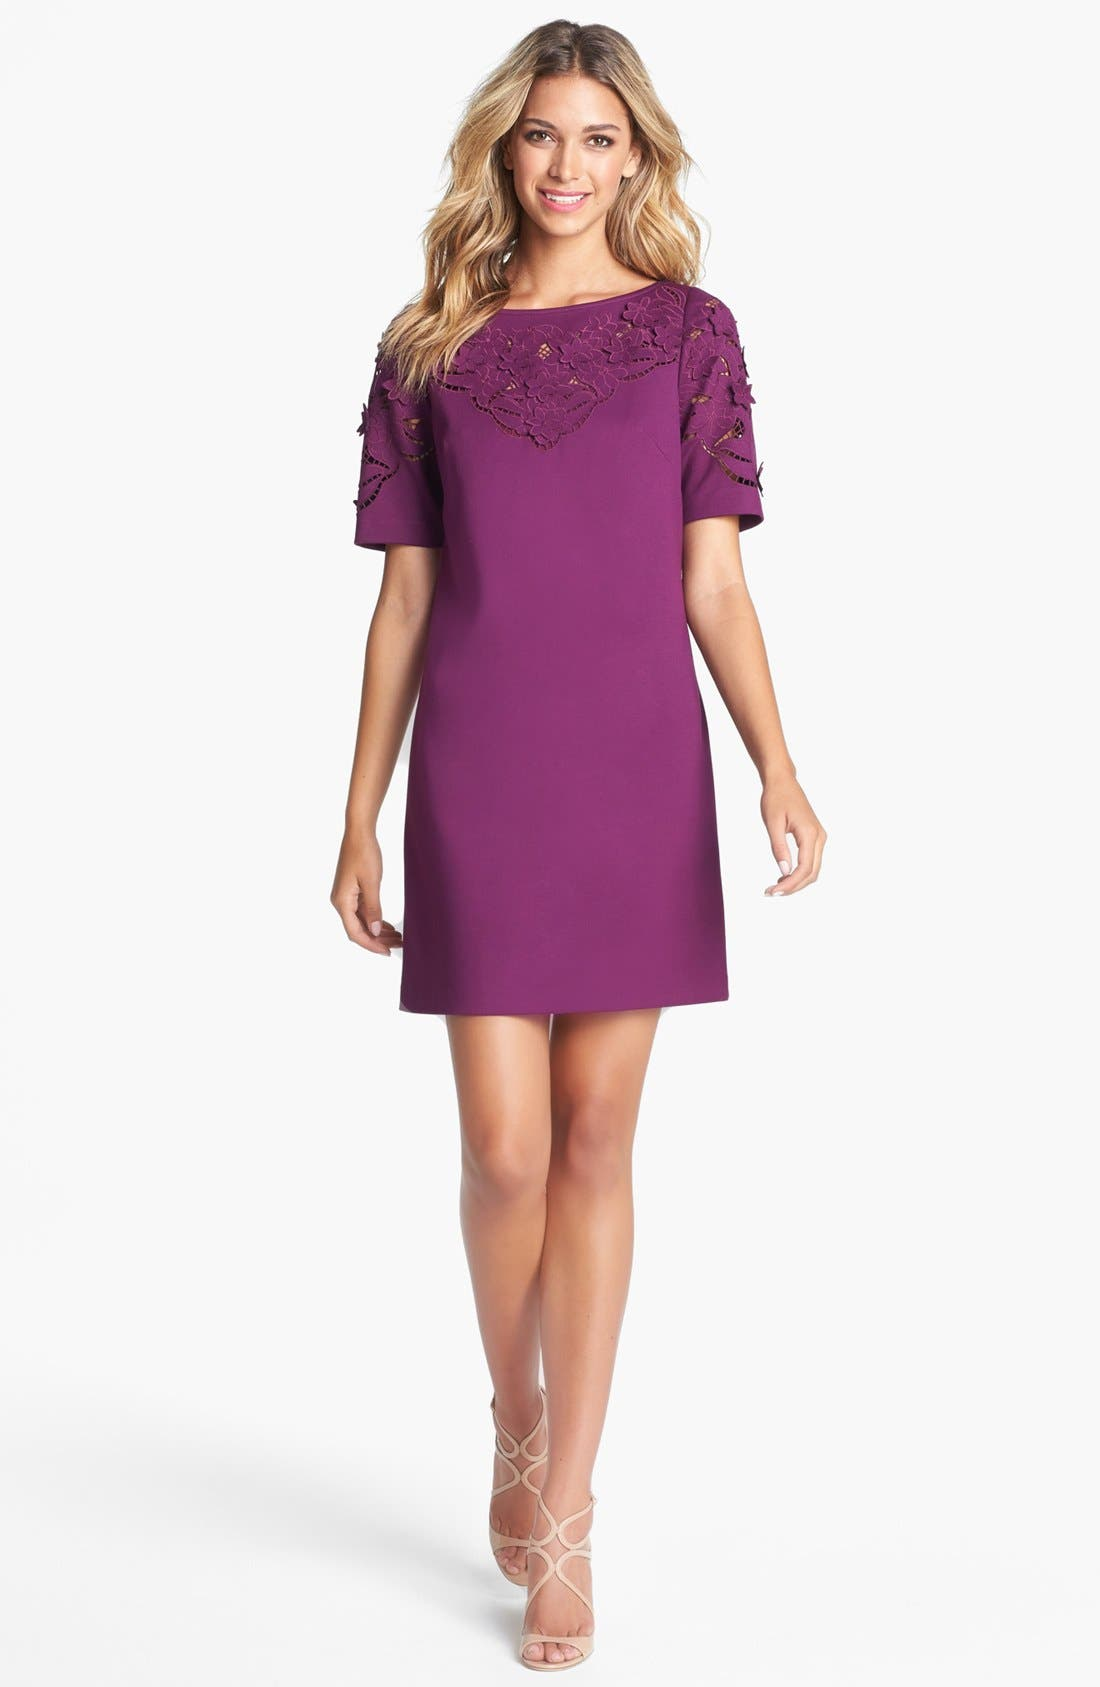 Main Image - Laundry by Shelli Segal Laser Cut Ponte Knit Shift Dress